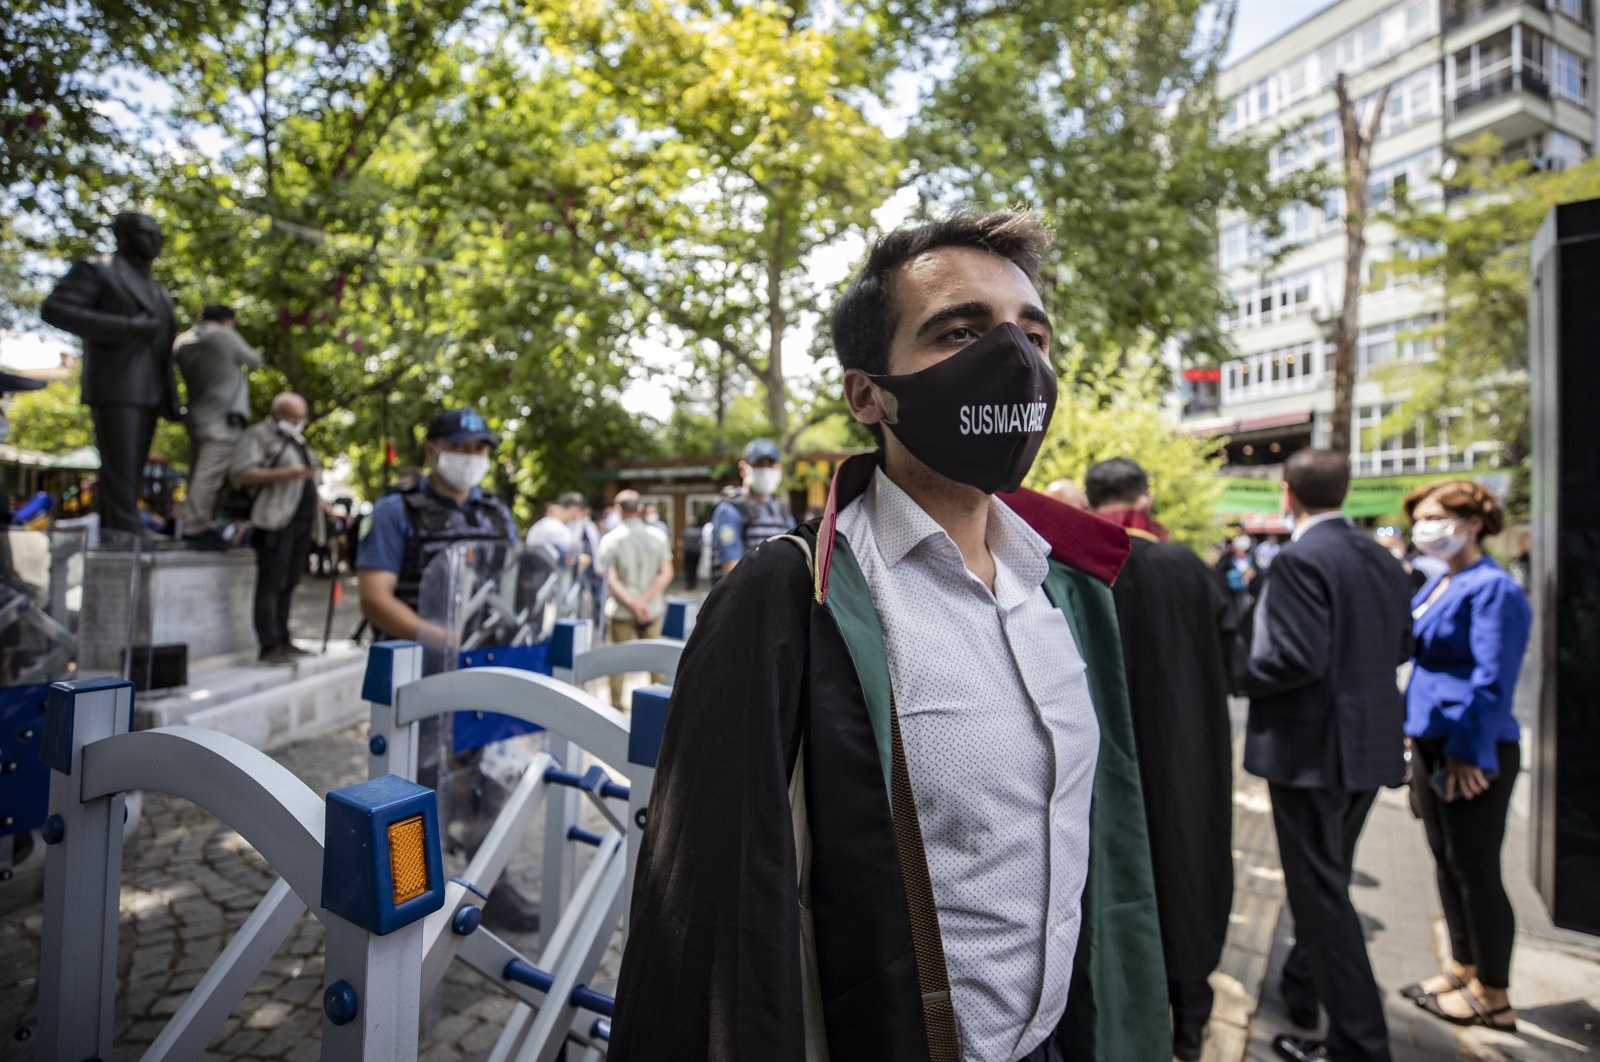 """A lawyer wearing a face mask with the phrase """"We will not be silenced"""" on it stands in protest against the controversial bar regulation in Ankara's Kuğulu Park, Turkey, July 6, 2020. (AA Photo)"""